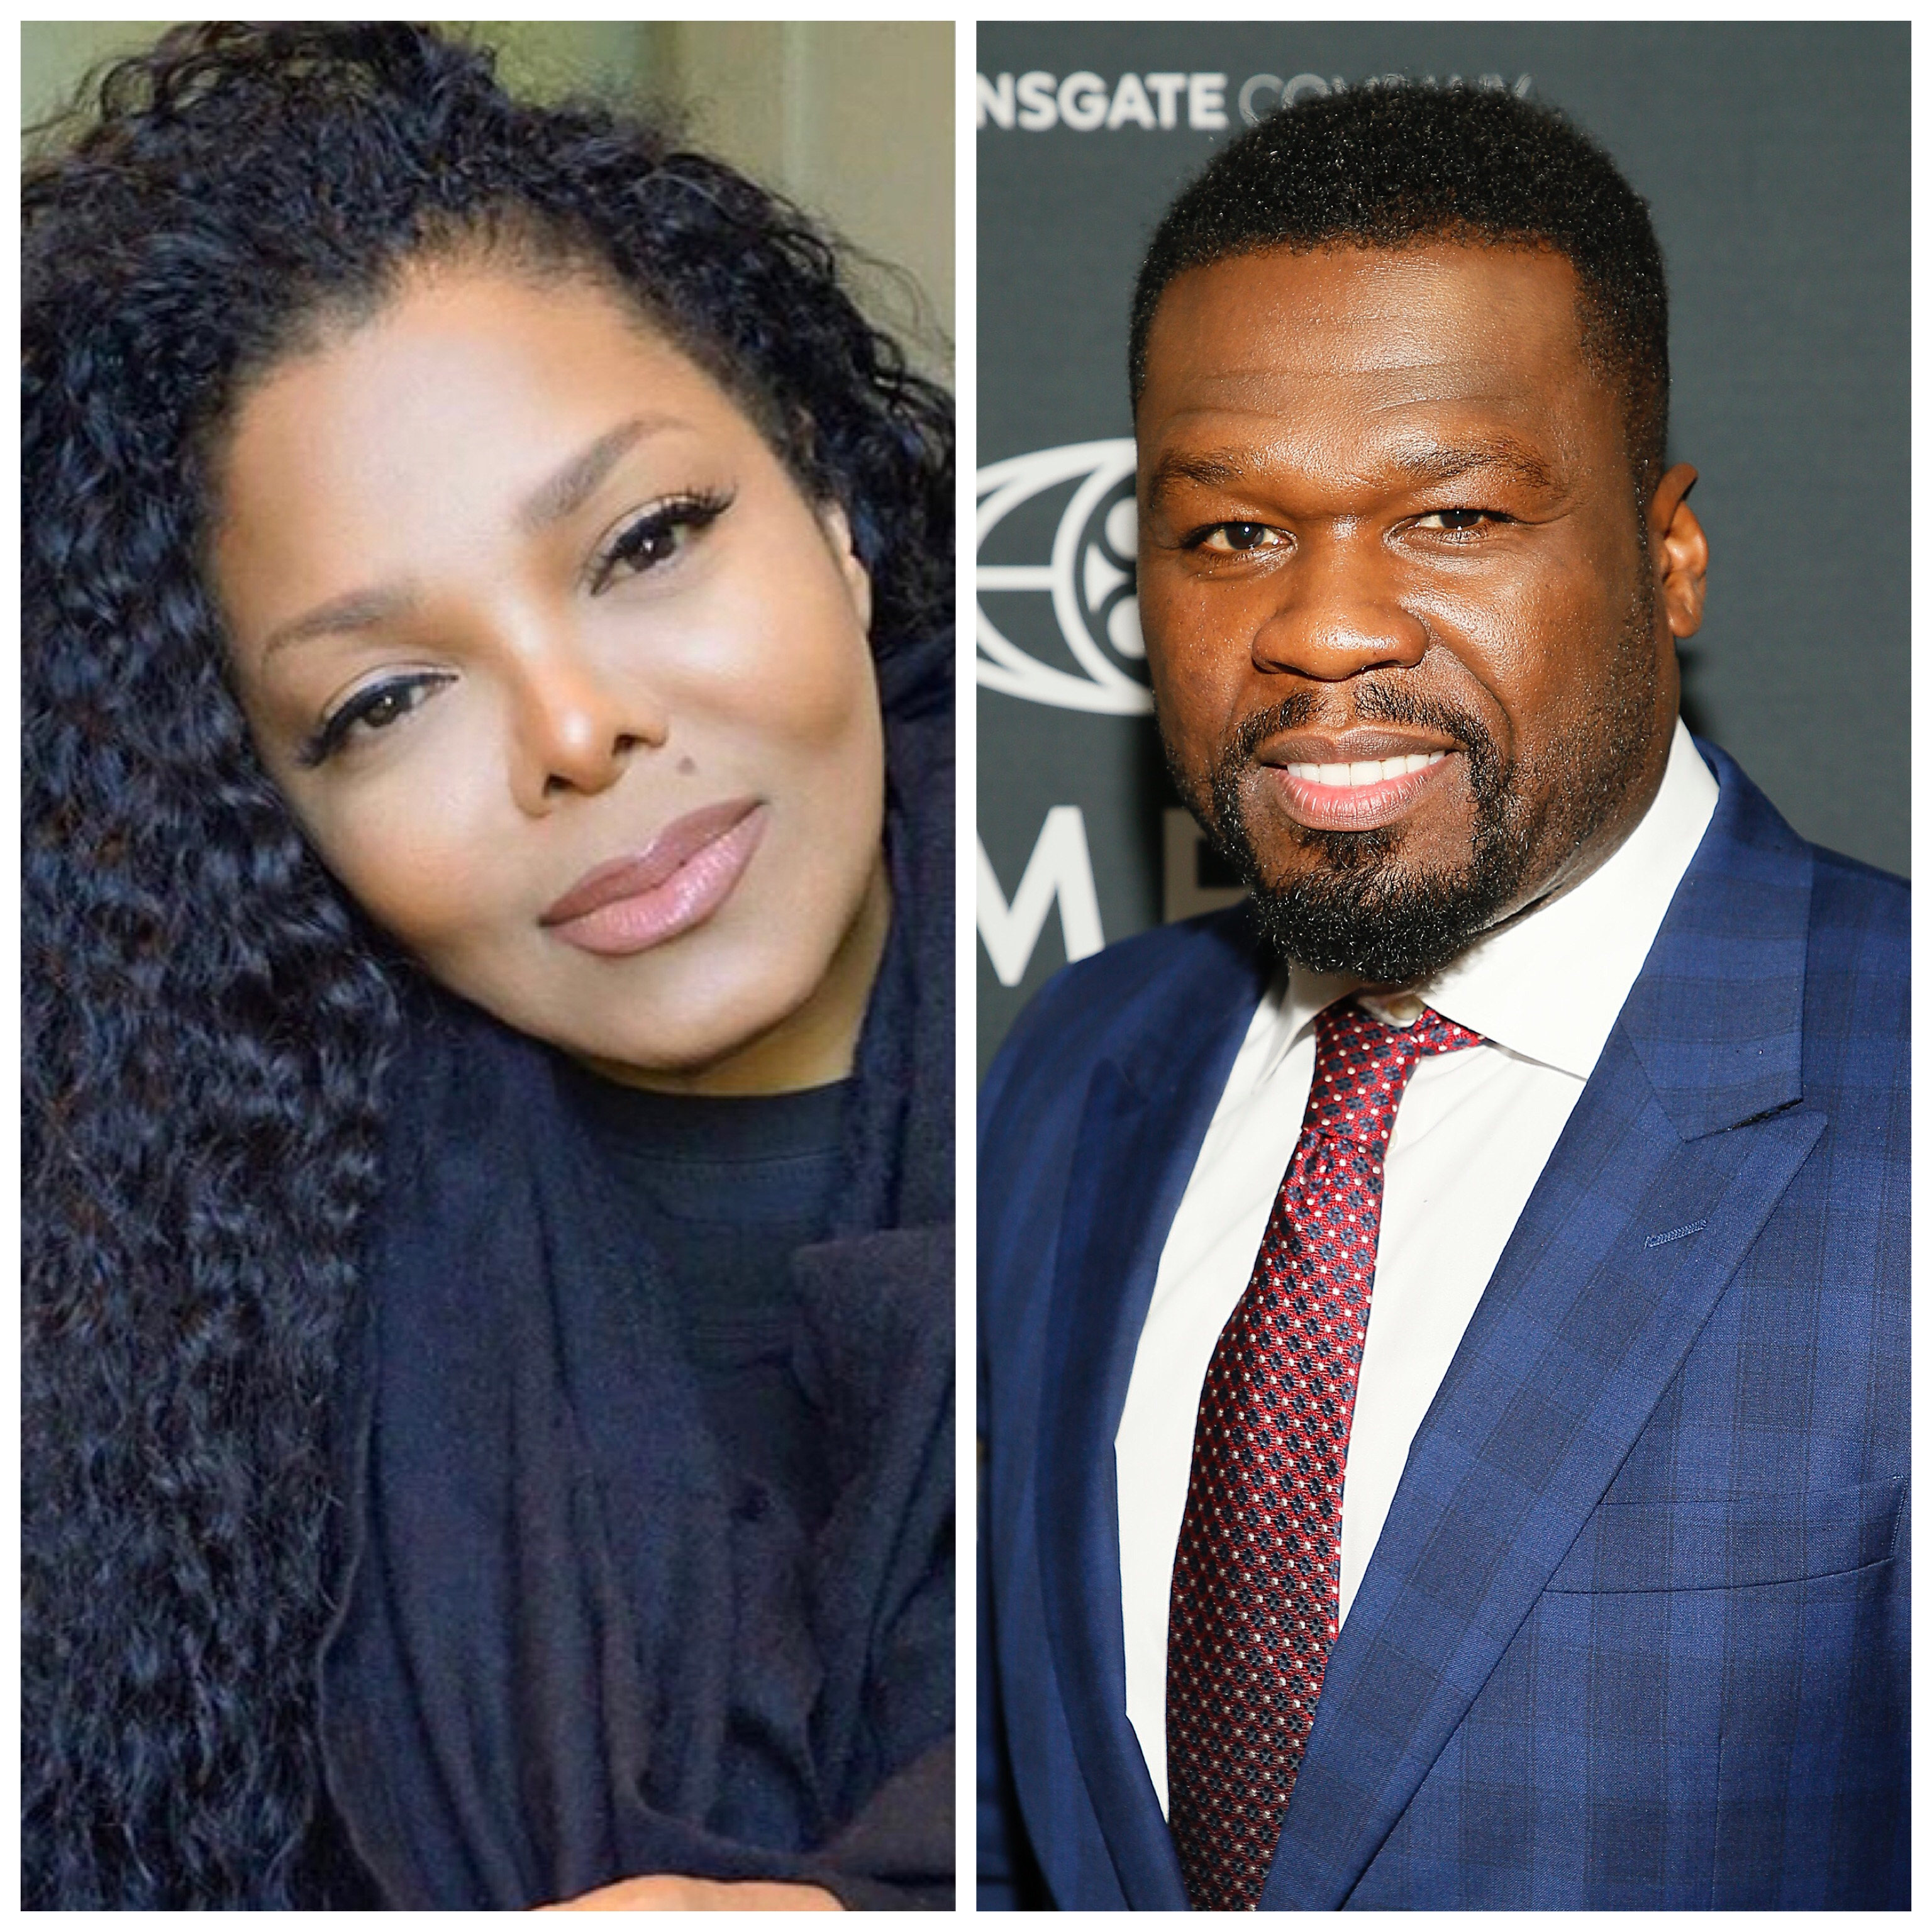 Fans think Janet Jackson shaded 50 Cent